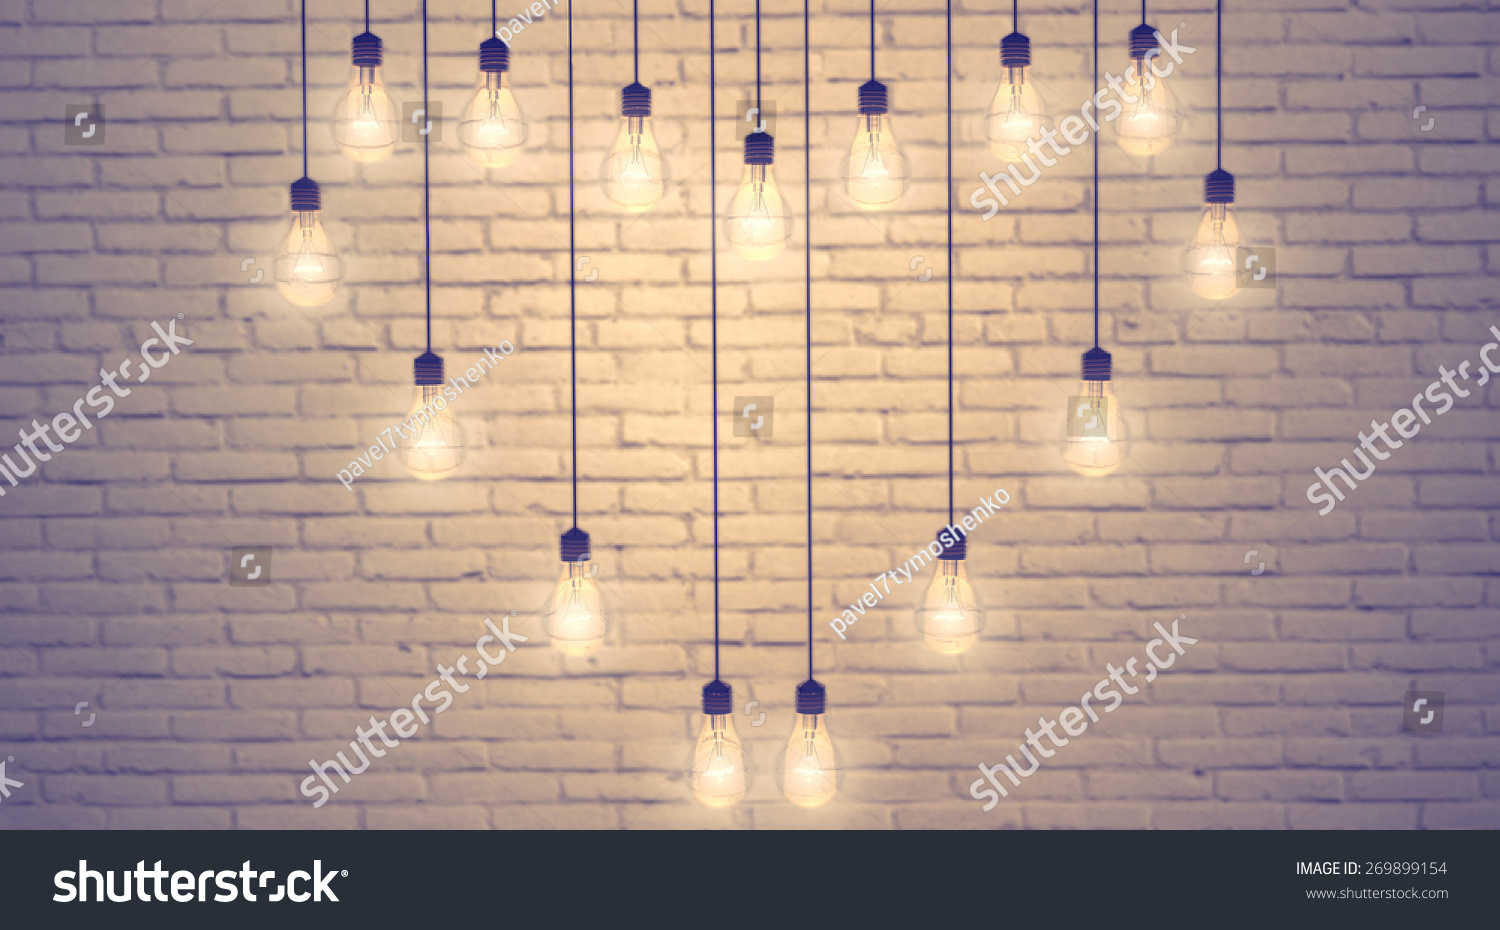 Bricks attic ceiling fixtures hearts stock illustration 269899154 bricks attic ceiling fixtures hearts dailygadgetfo Image collections